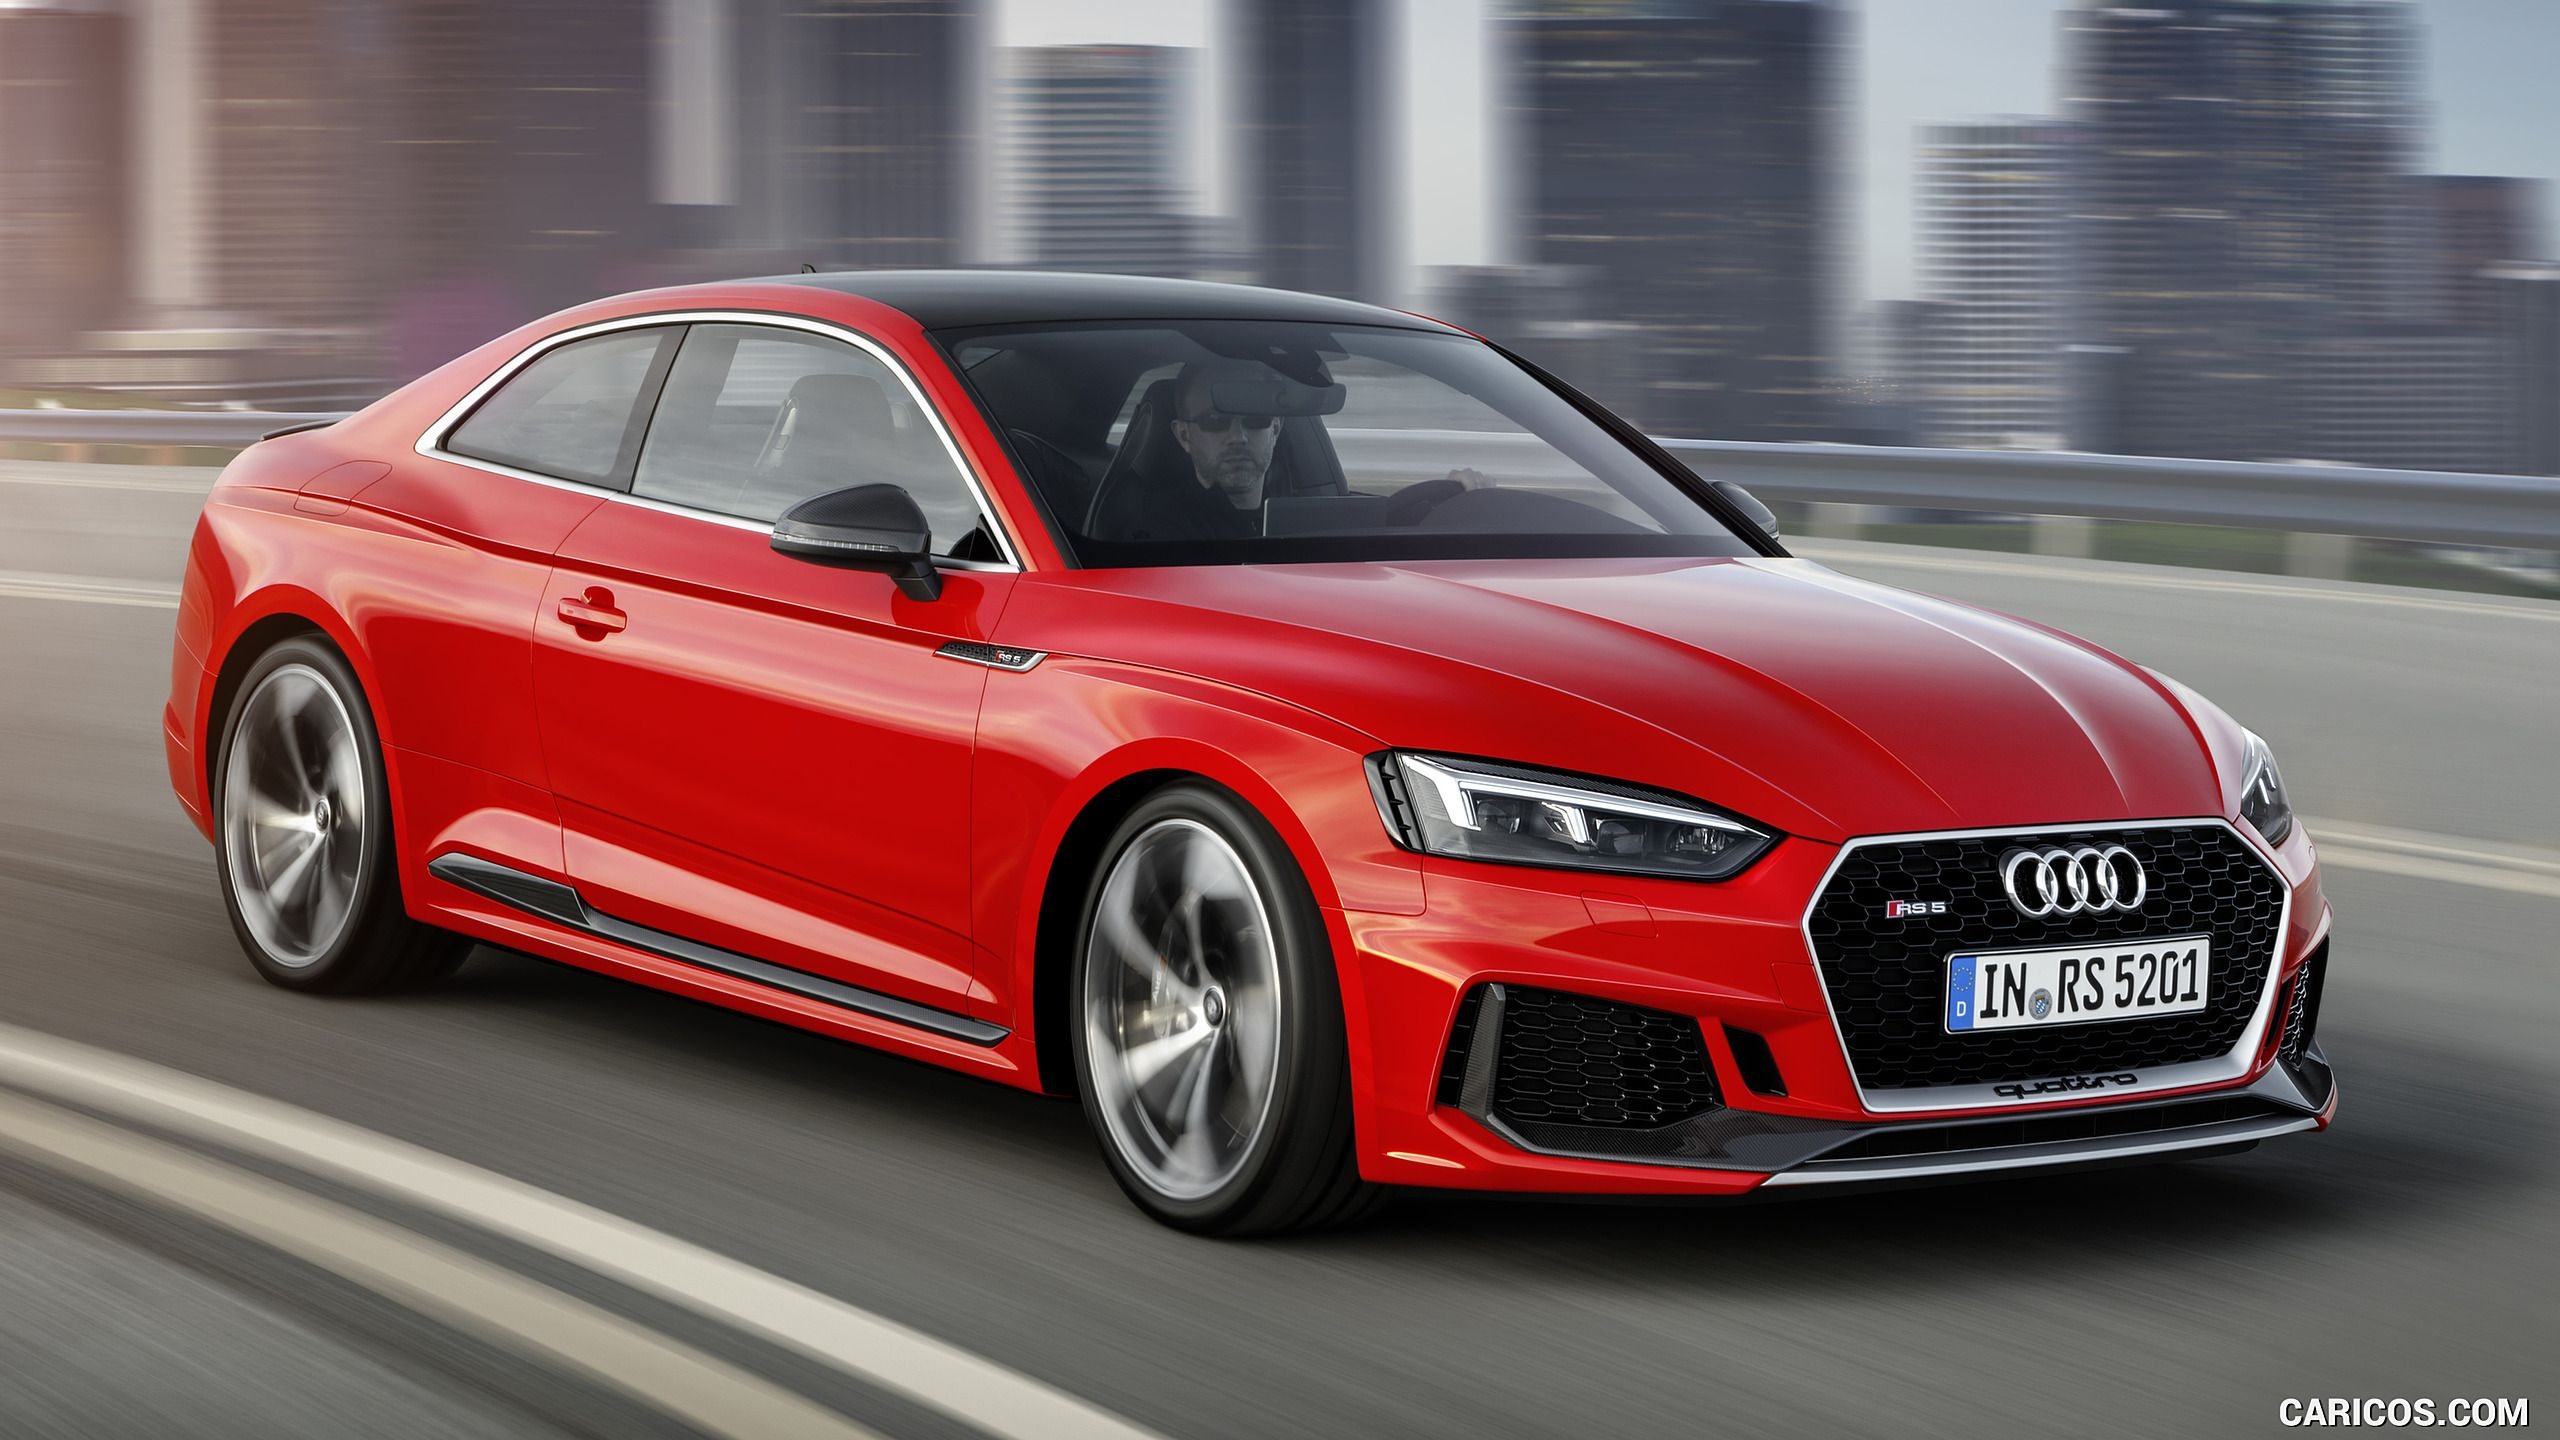 2018 Audi RS 5 Coupe (Color: Misano Red) - Front Three-Quarter HD